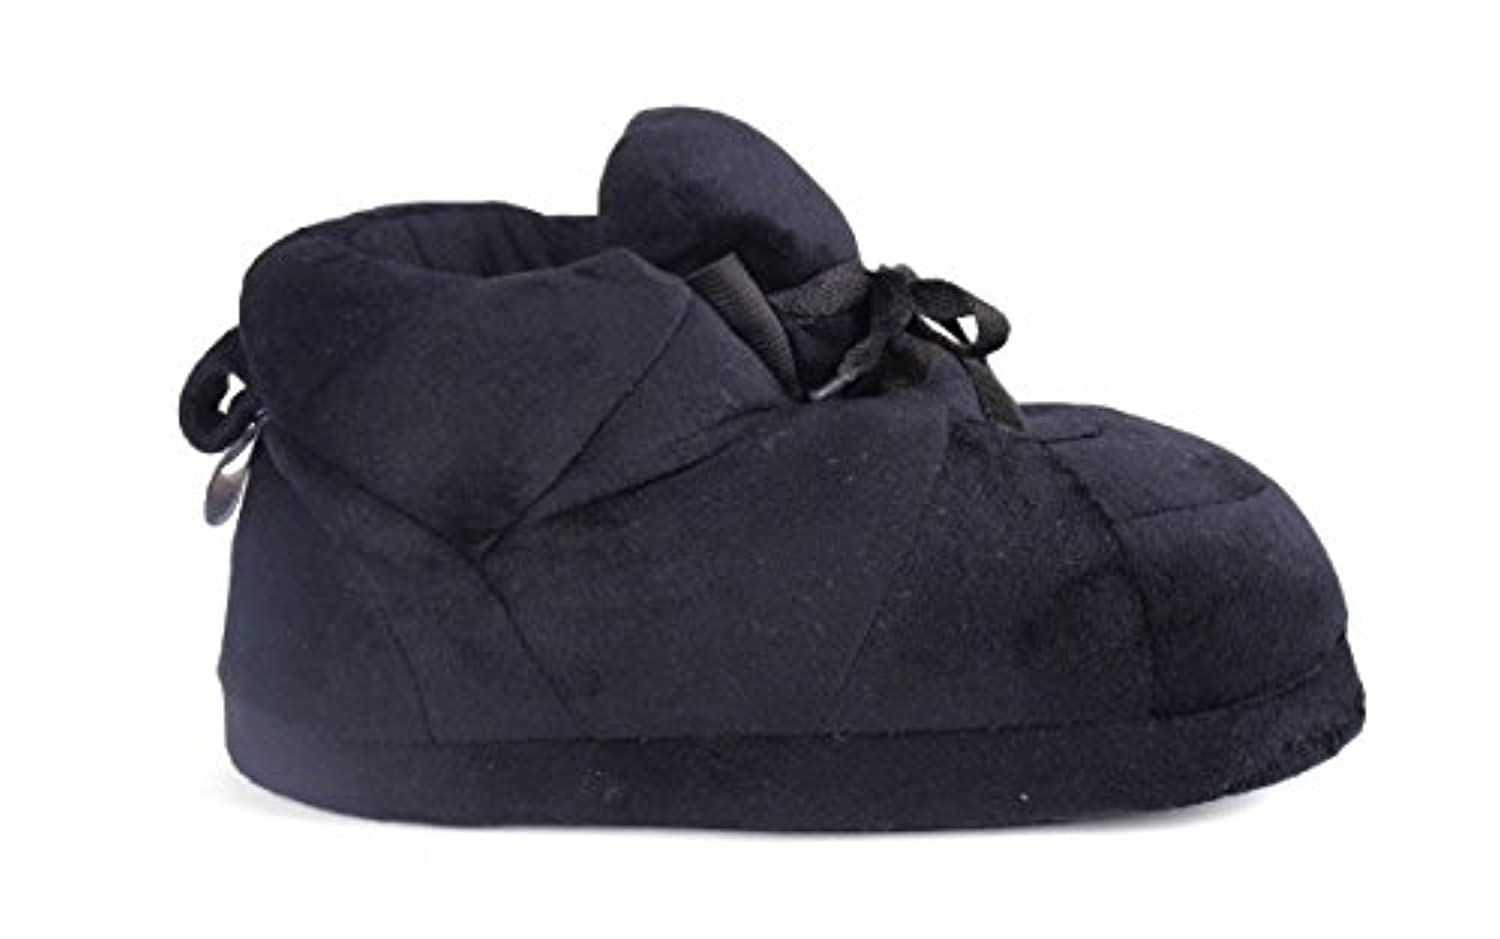 Happy Feet - All Black - Slippers - Small